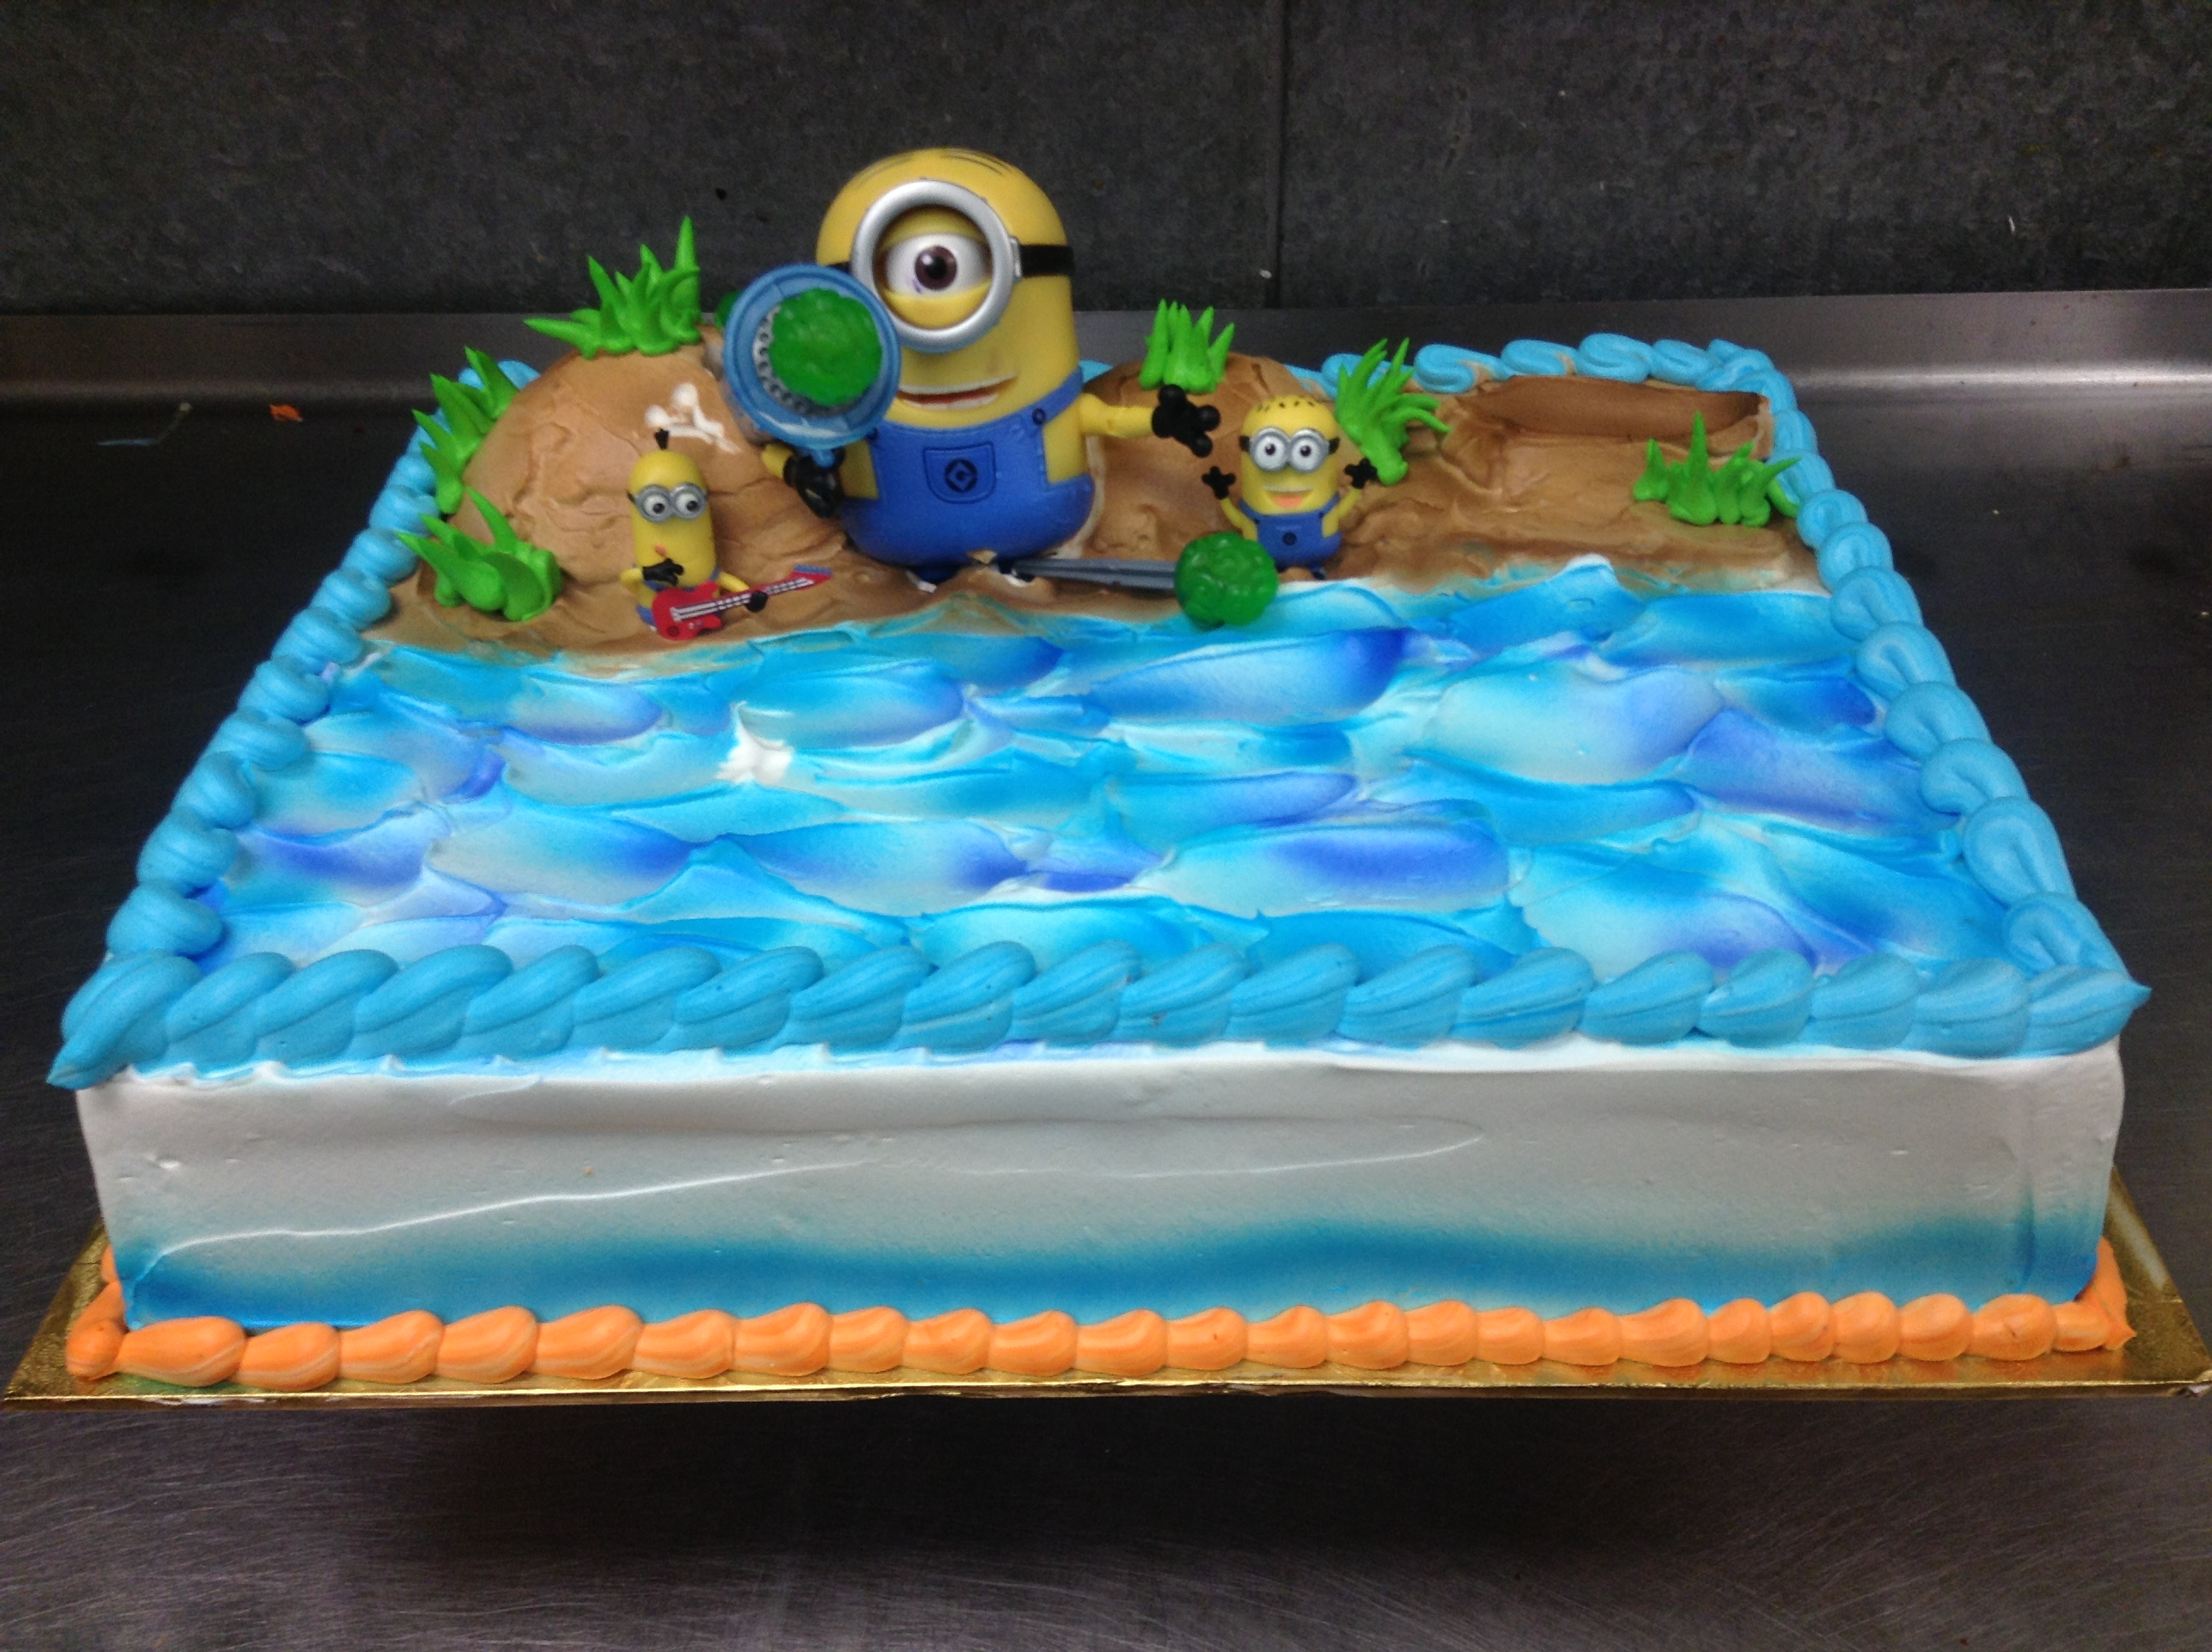 Specially Made To Order Cakes La Puente Bakery